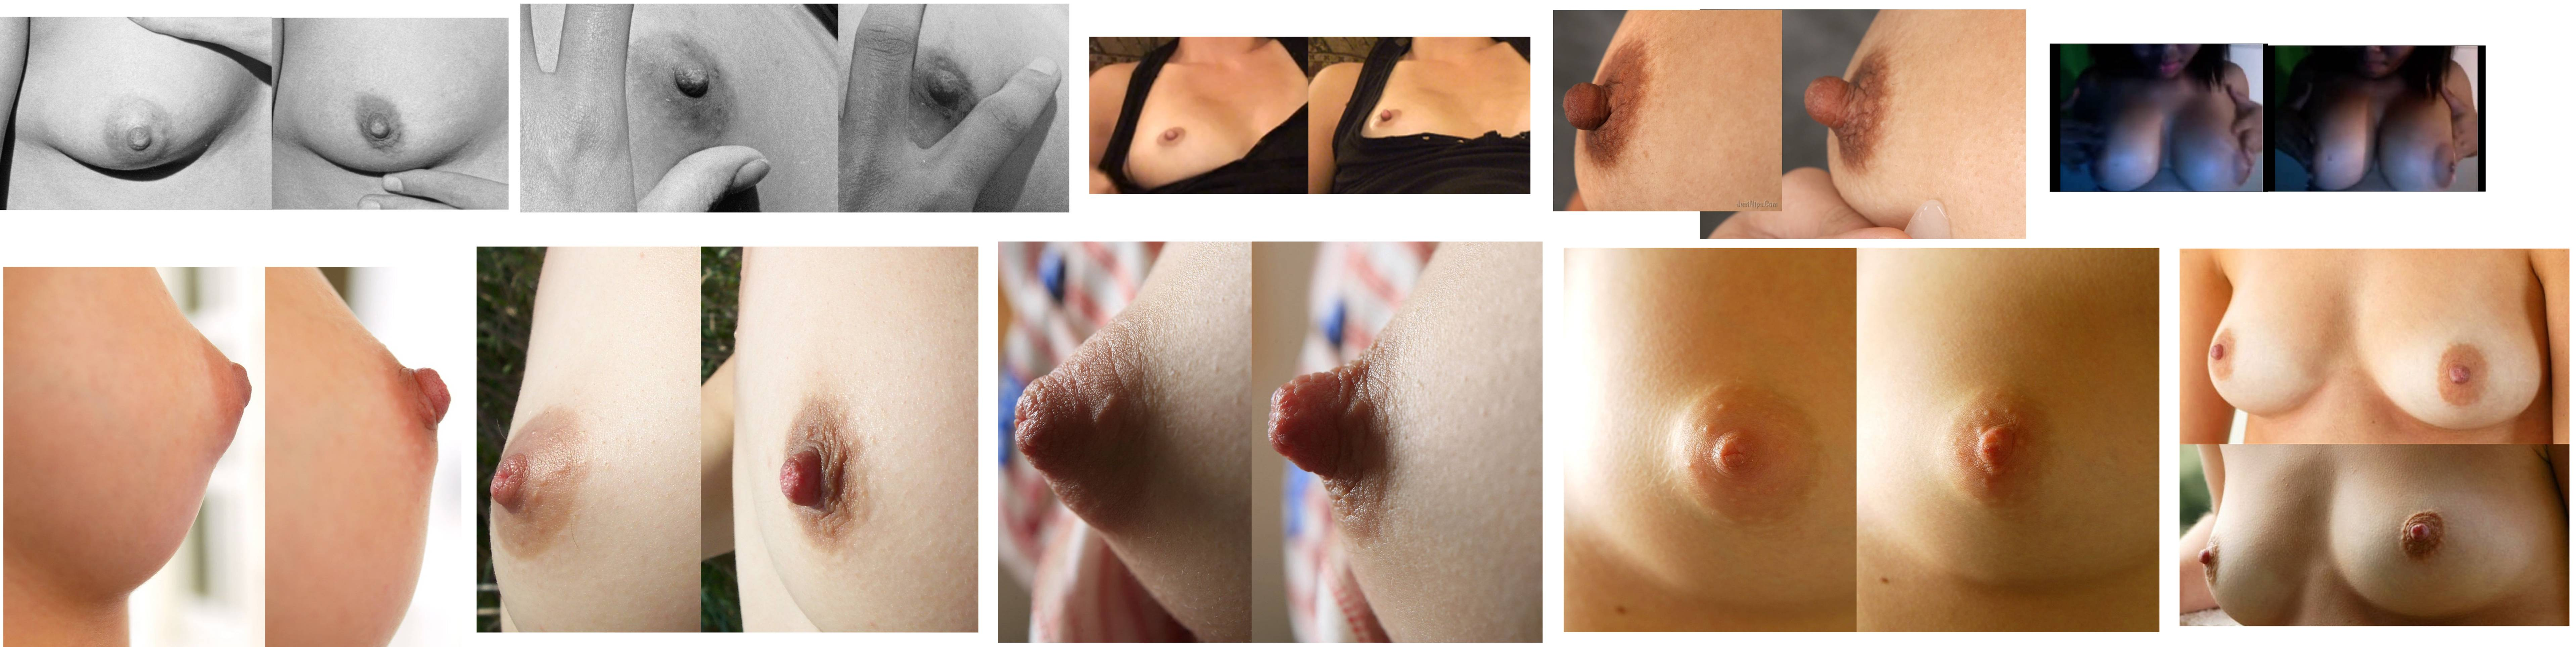 swollen breast during fucking